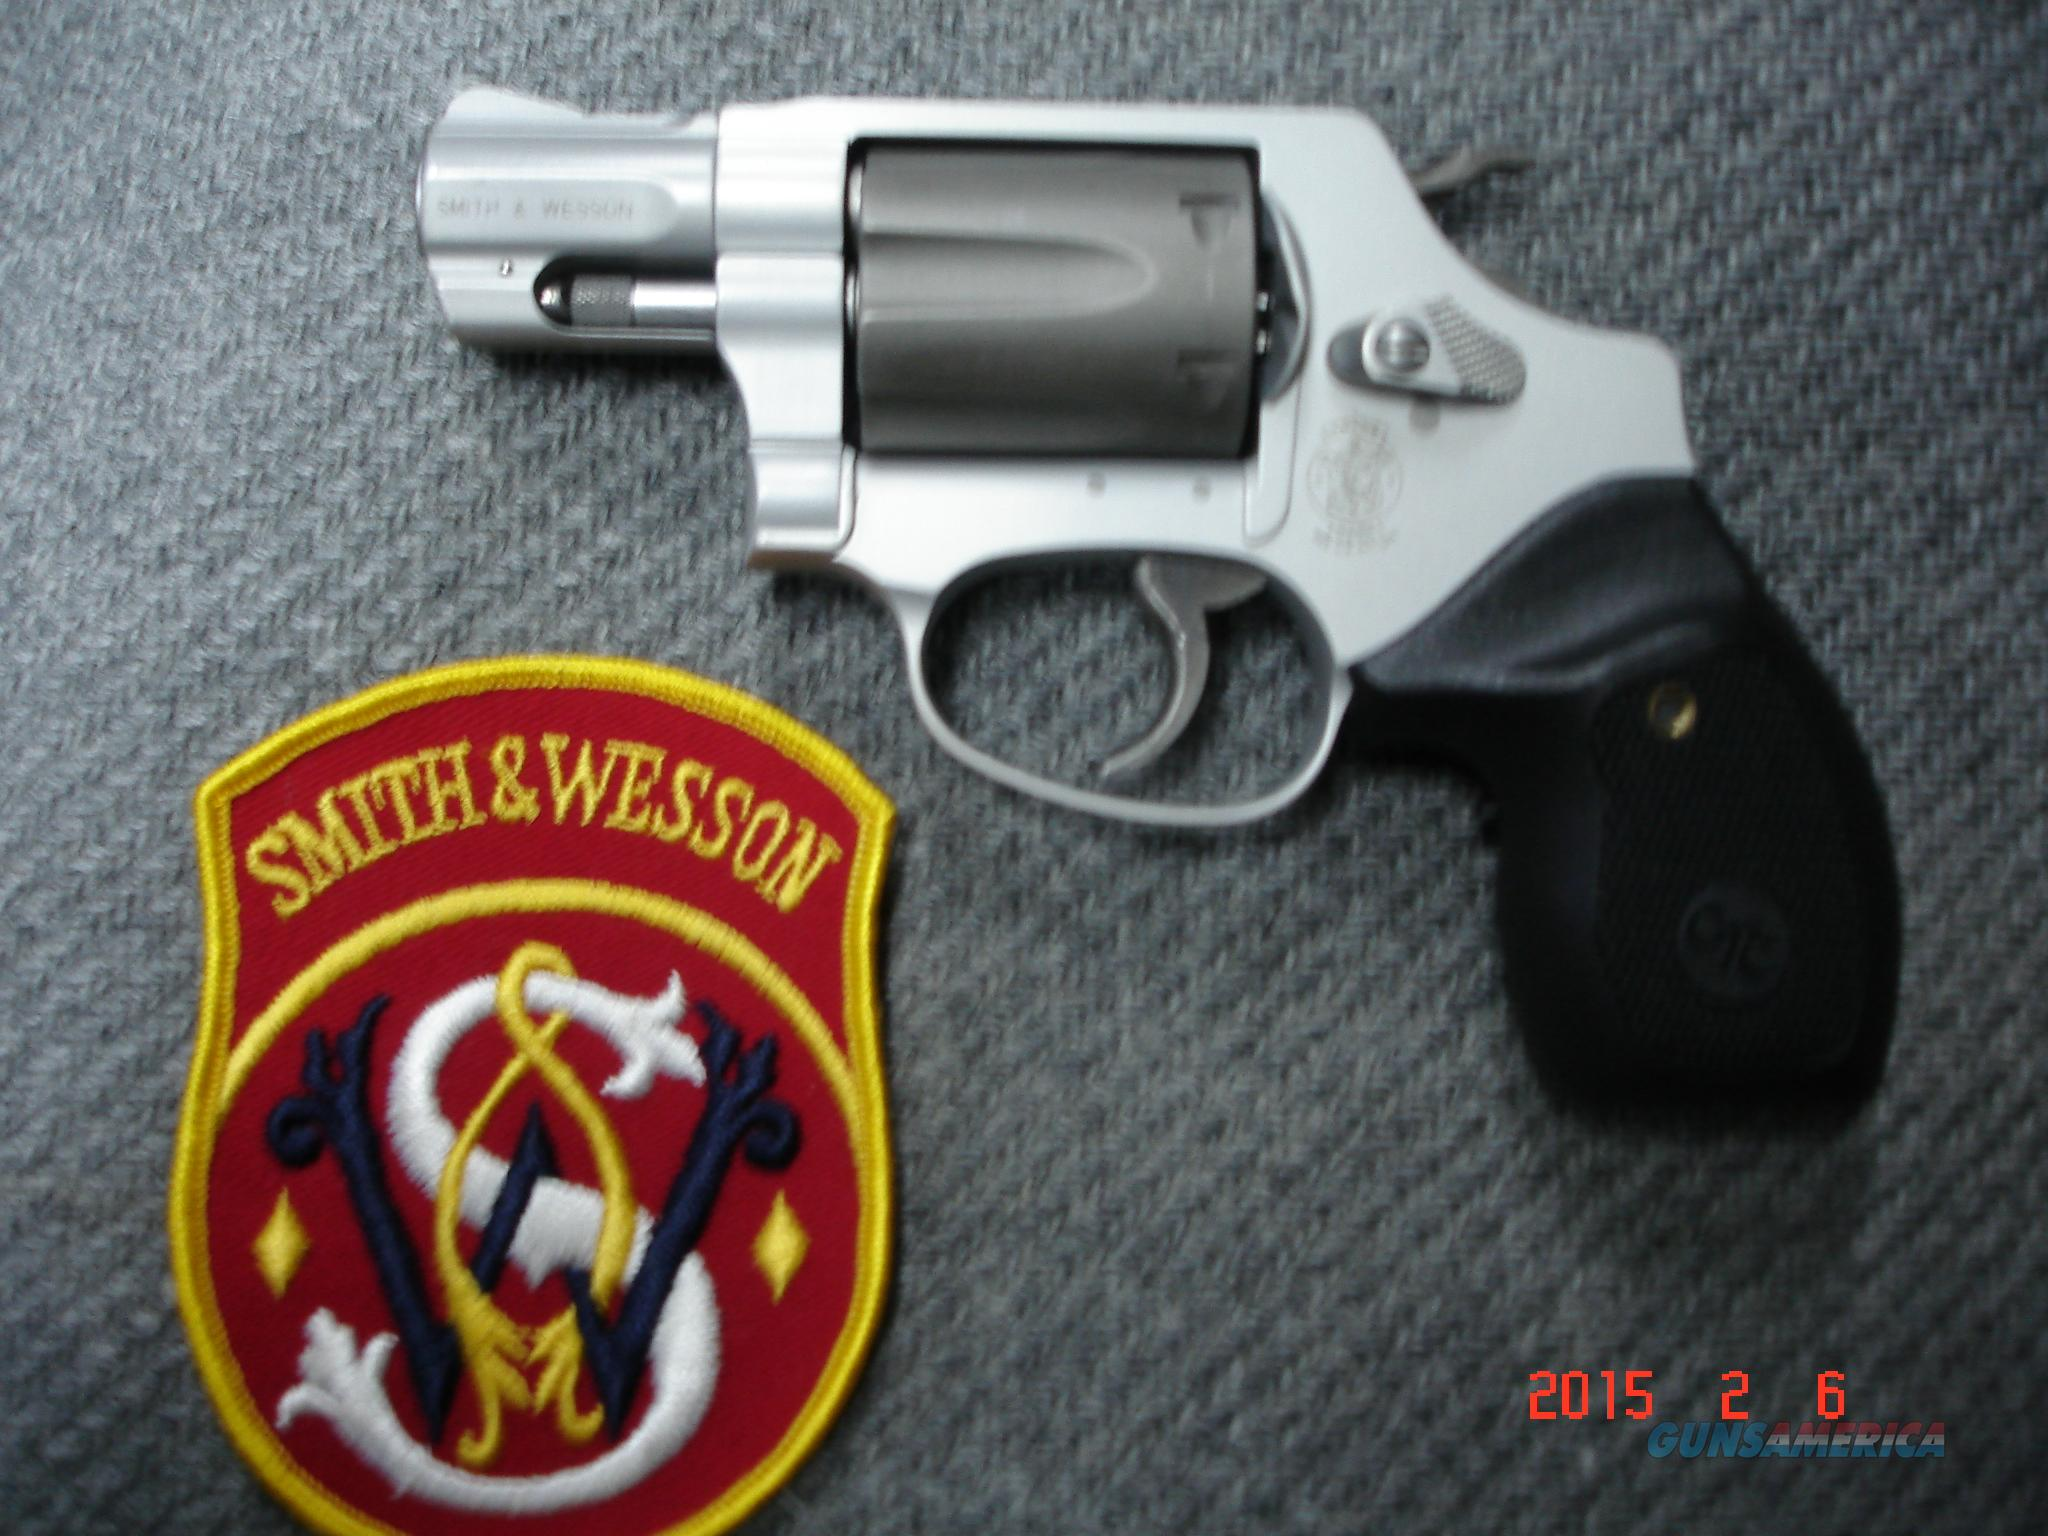 S&W Mod. 331 AirLite TI .32H&R Mag.Crimson trace Stocks  Guns > Pistols > Smith & Wesson Revolvers > Full Frame Revolver